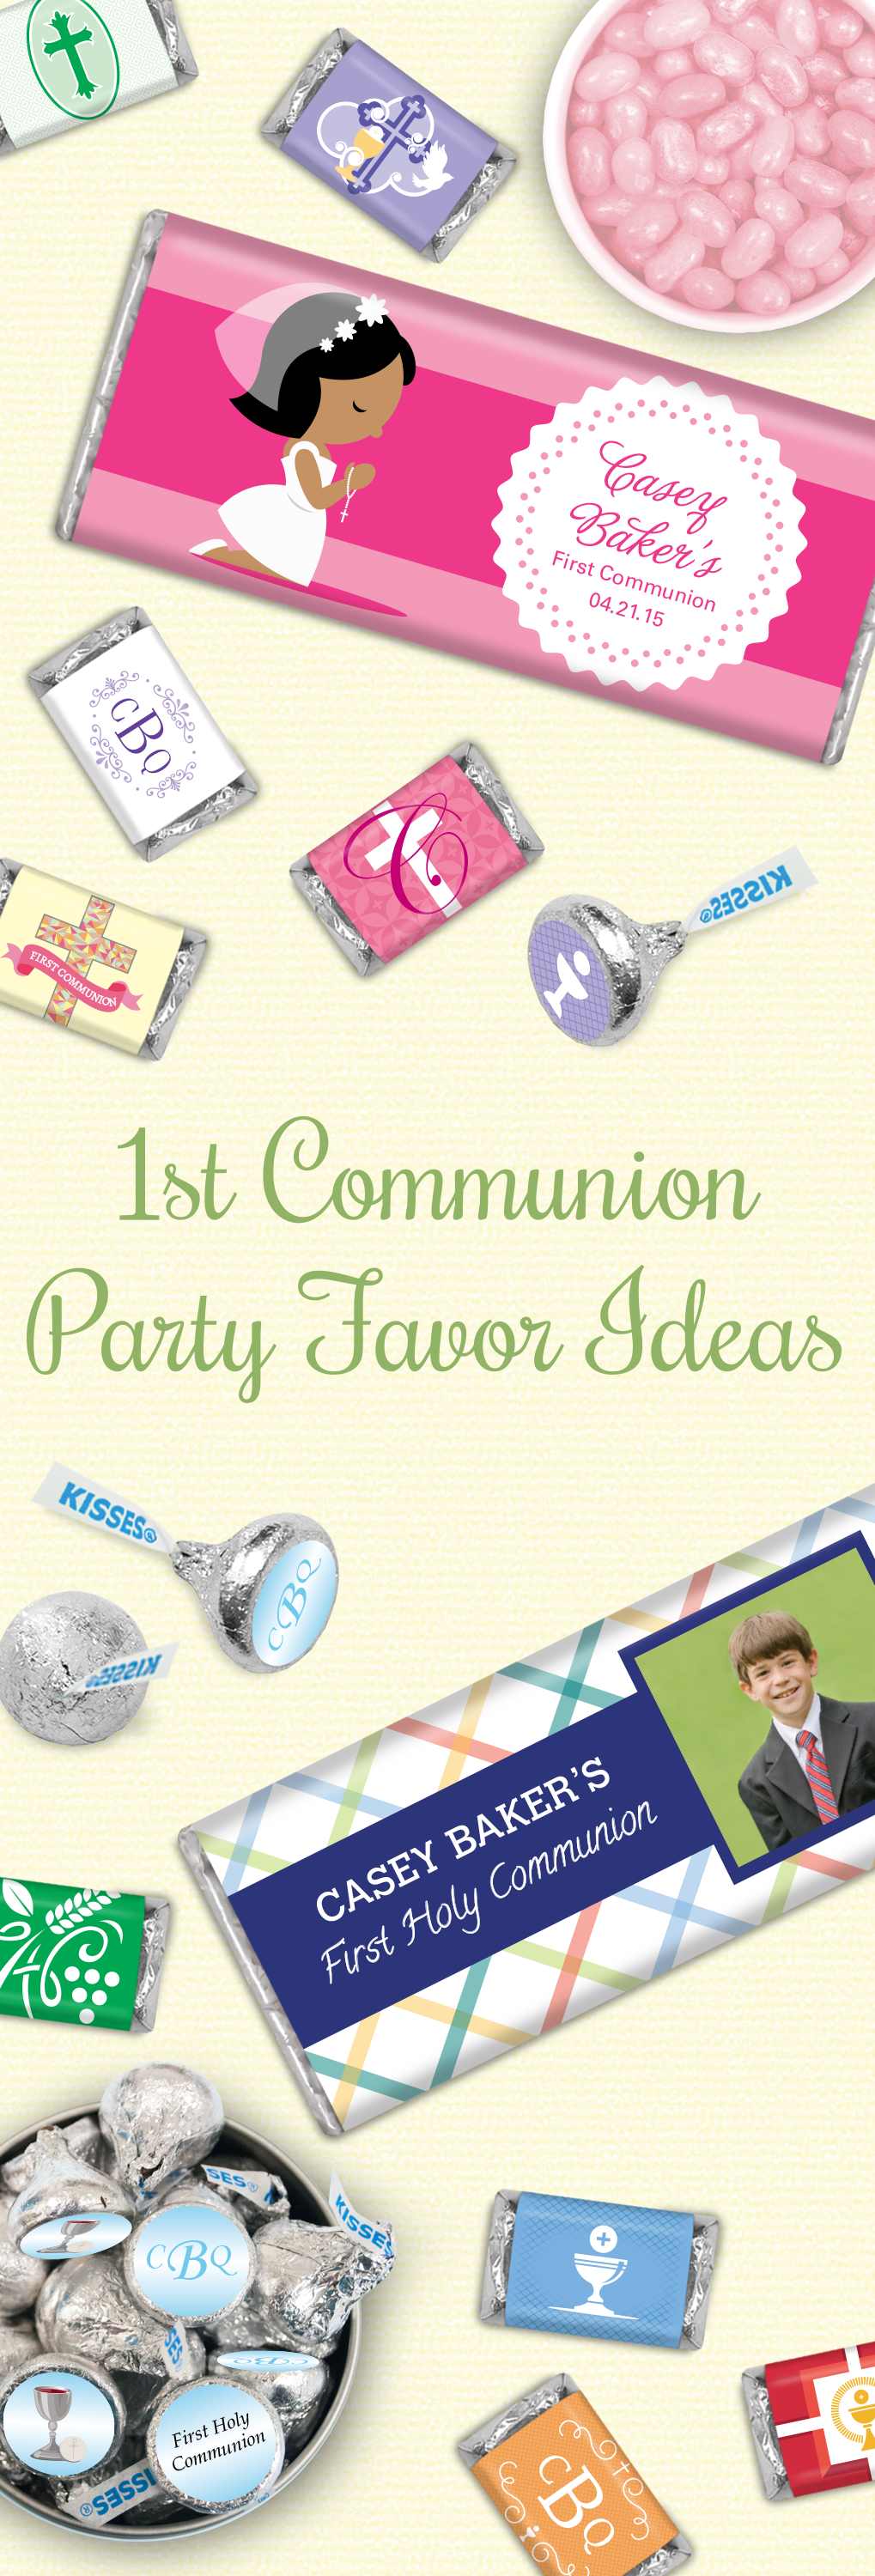 First munion Party Favor Ideas for Boys and Girls Personalized